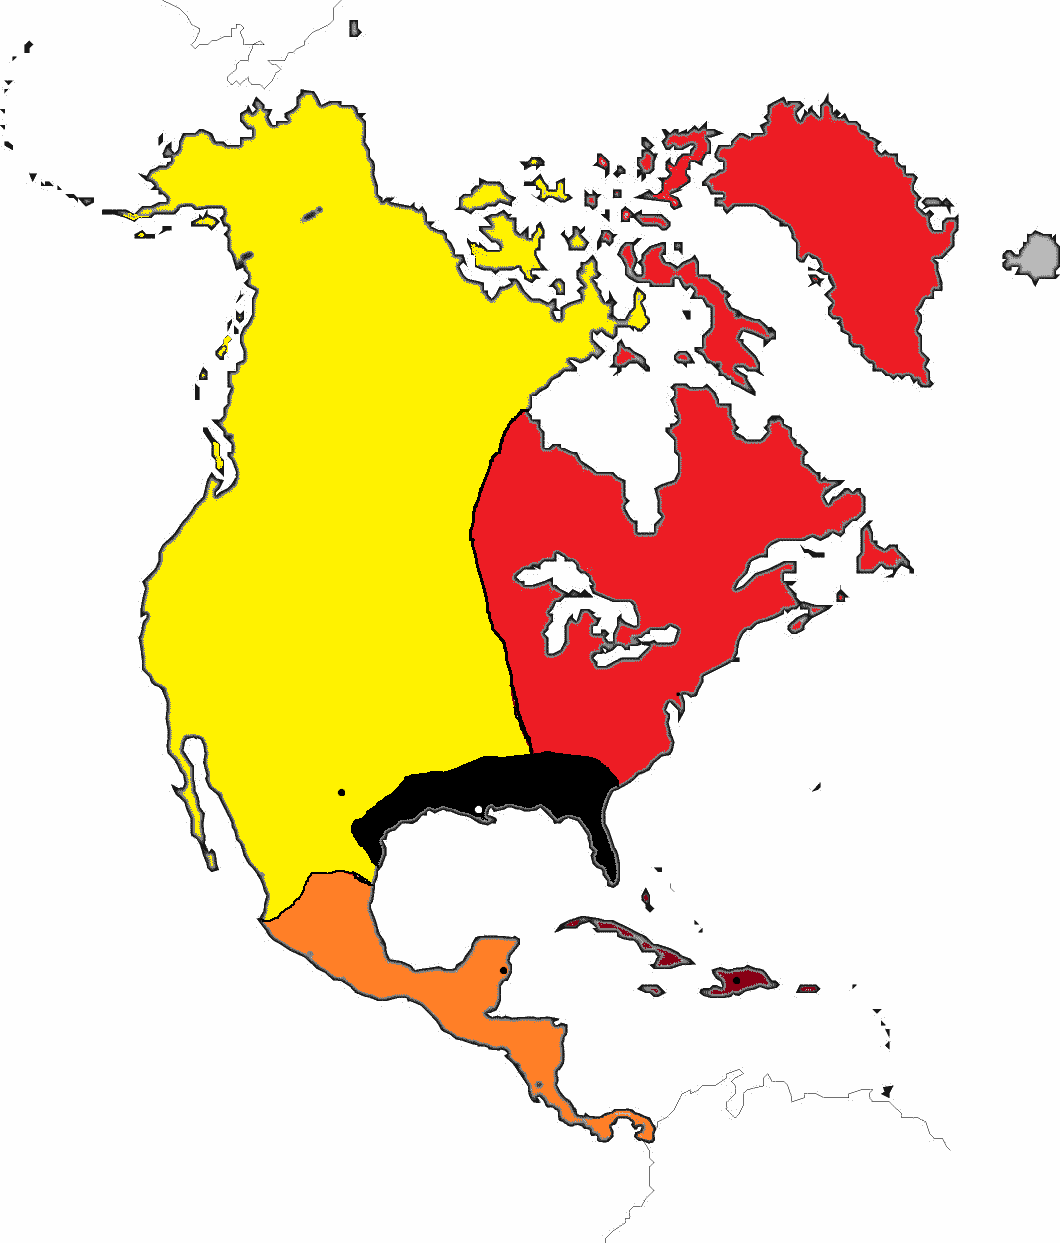 North America Outline Map North America Political Blank Map - Blank maps of america